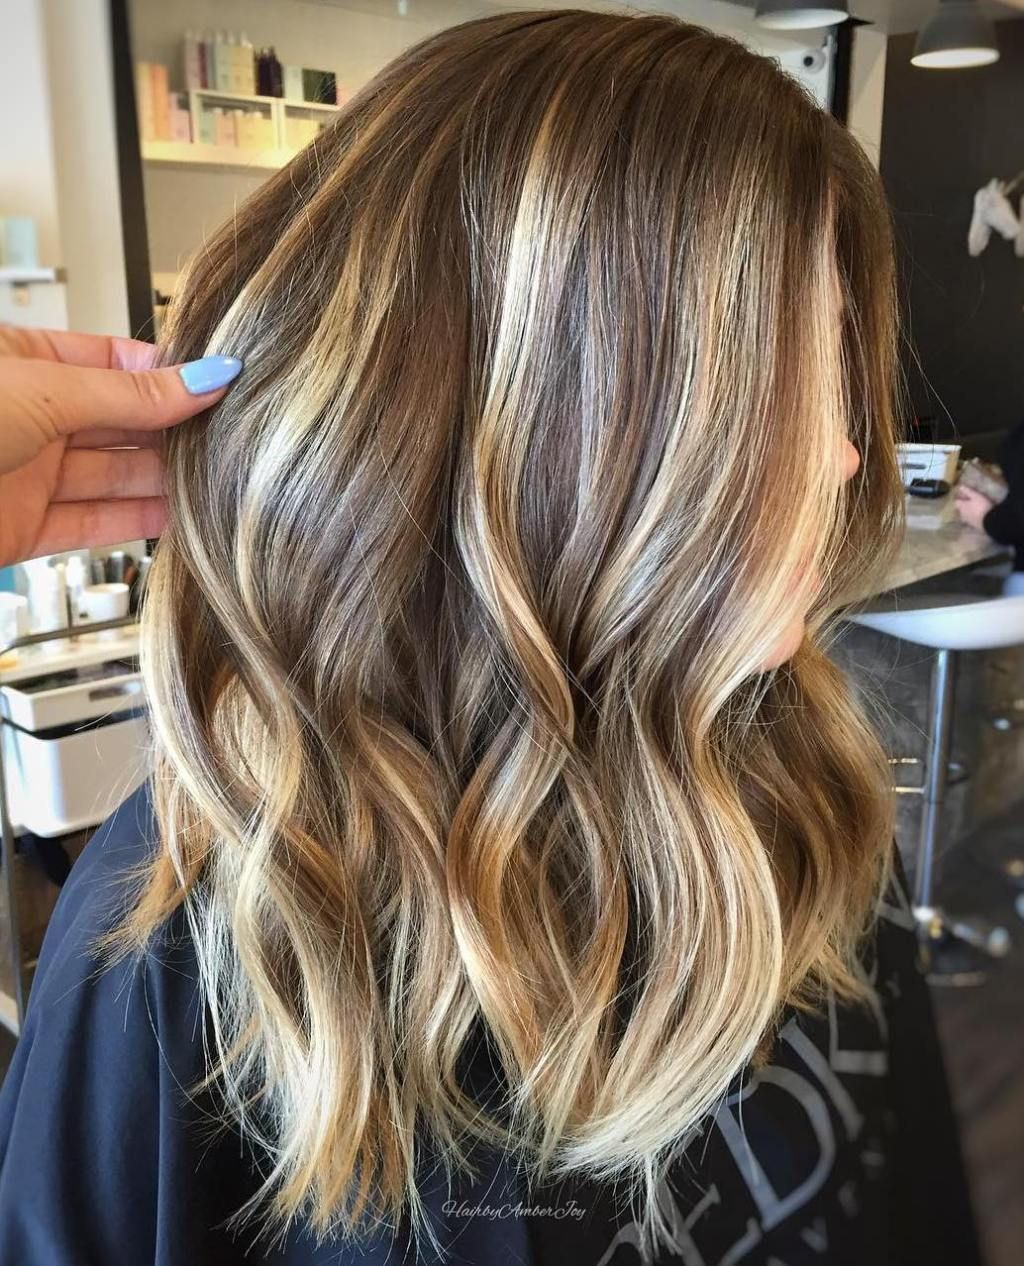 the best balayage hair color ideas 90 flattering styles blonde balayage balayage and brunettes. Black Bedroom Furniture Sets. Home Design Ideas